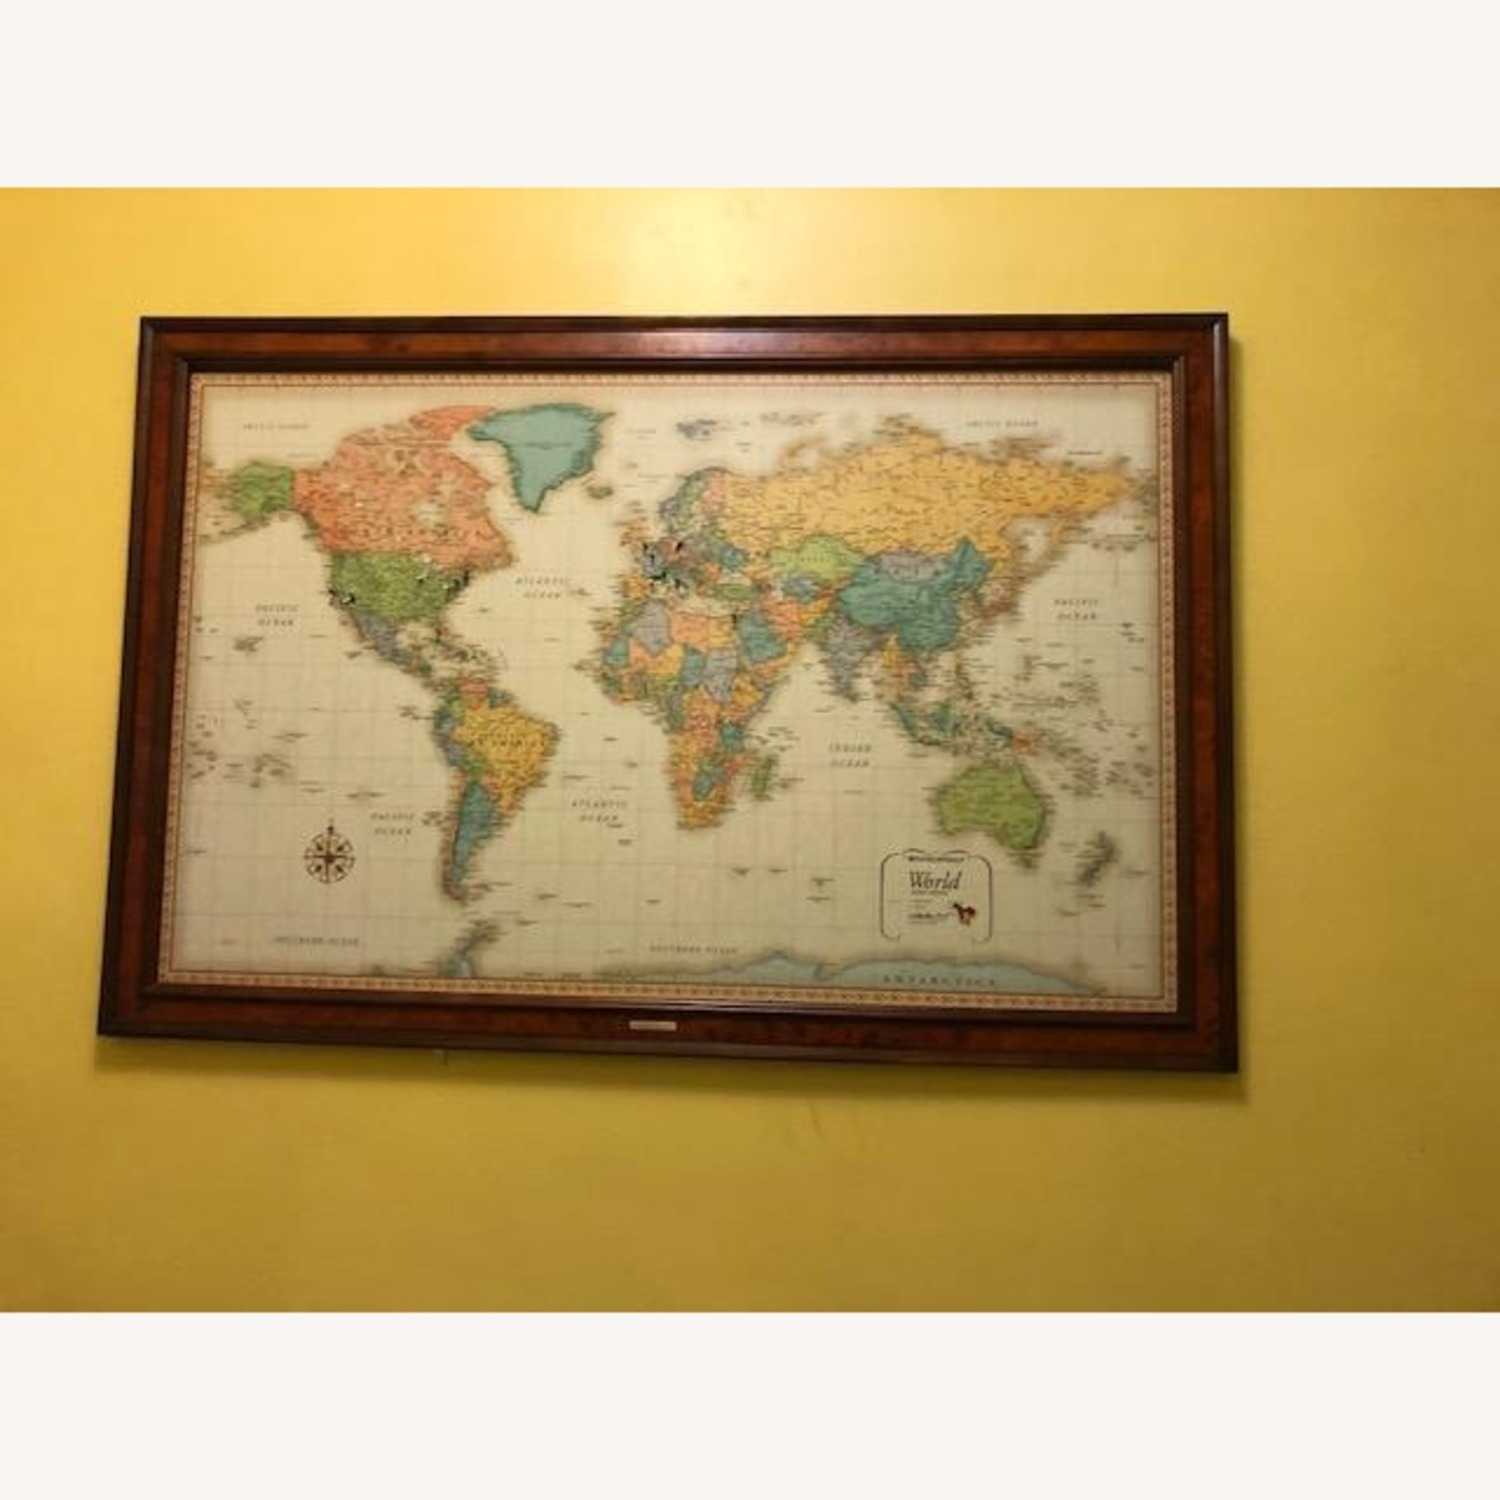 Frontgate Antique World Map - image-1